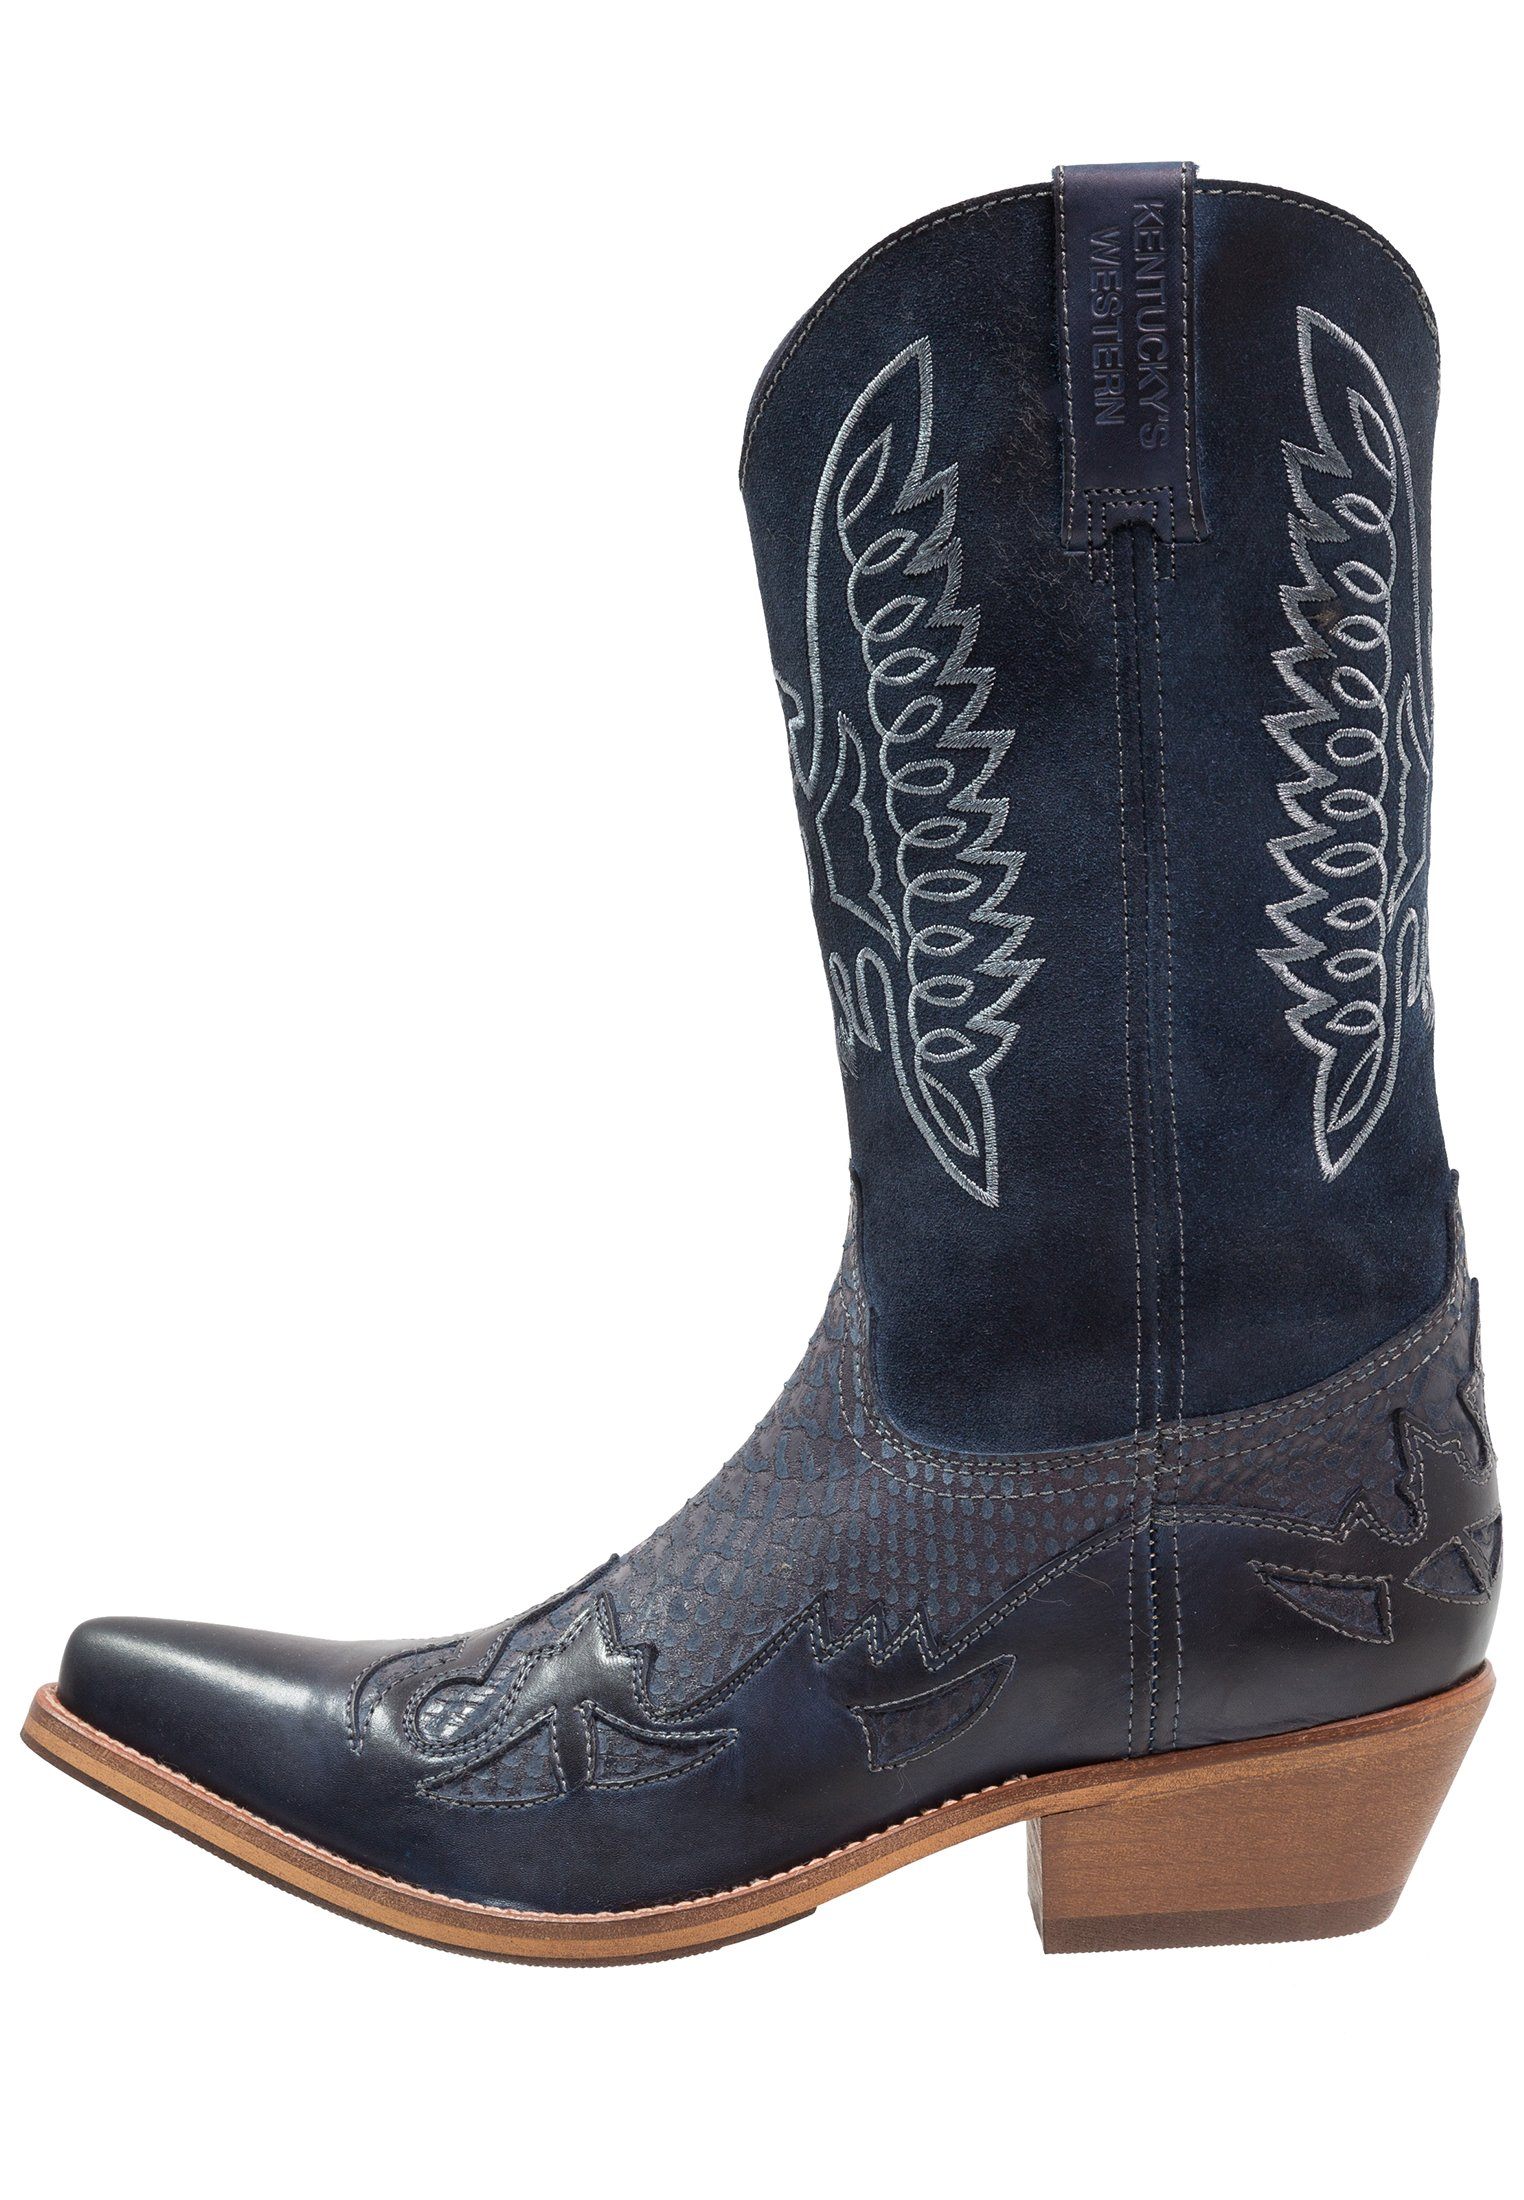 Chaussures Kentucky's Western | Nouvelle collection sur Zalando